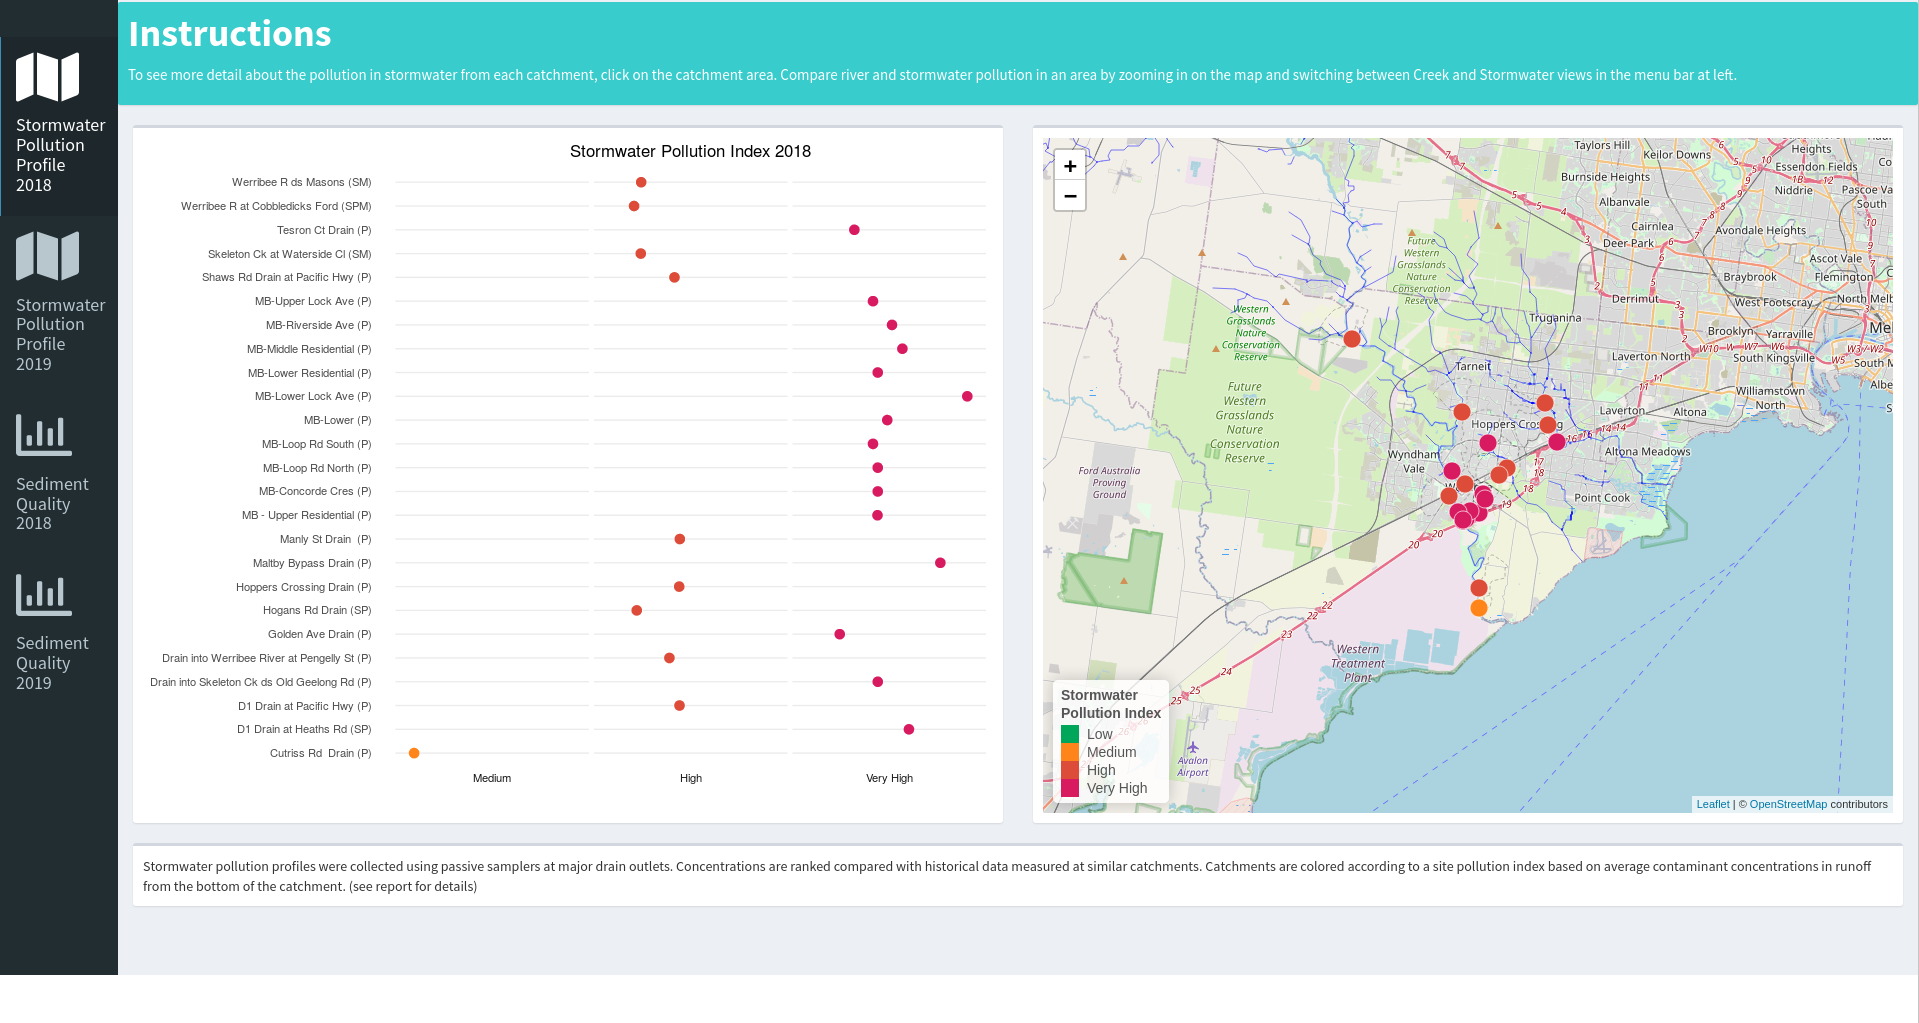 Overview of werribee stormwater survey results